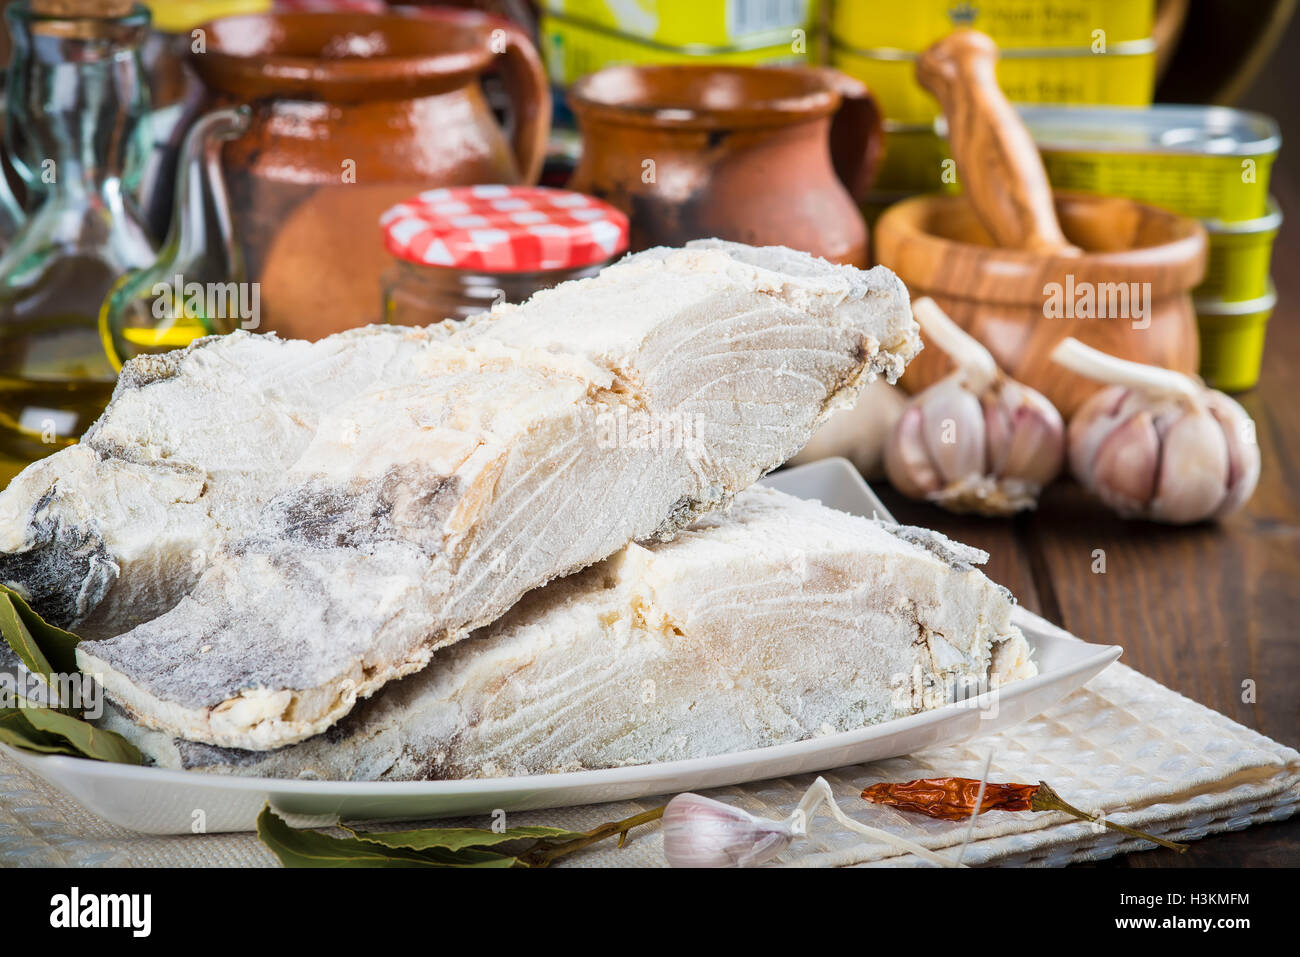 Salted cod cut with ingredients and utensils on the table of the kitchen for cooking - Stock Image